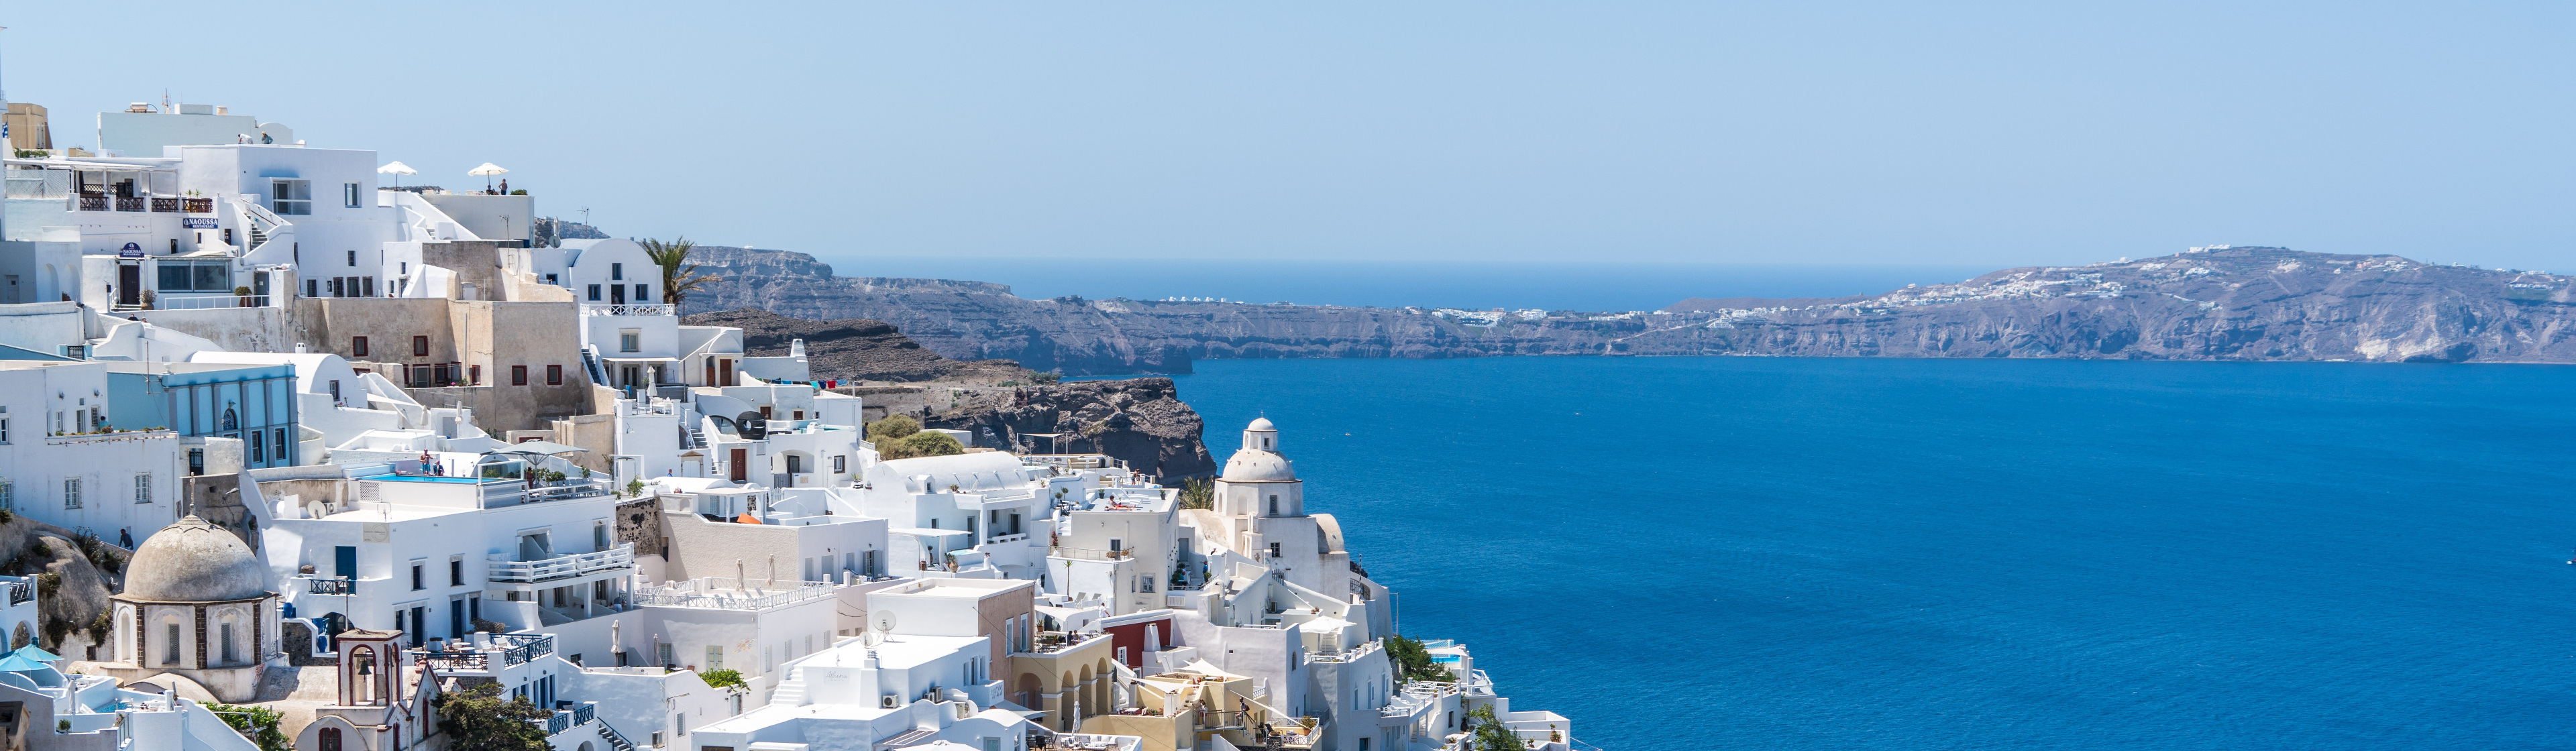 Travel Bucket List: Greek Island Hopping